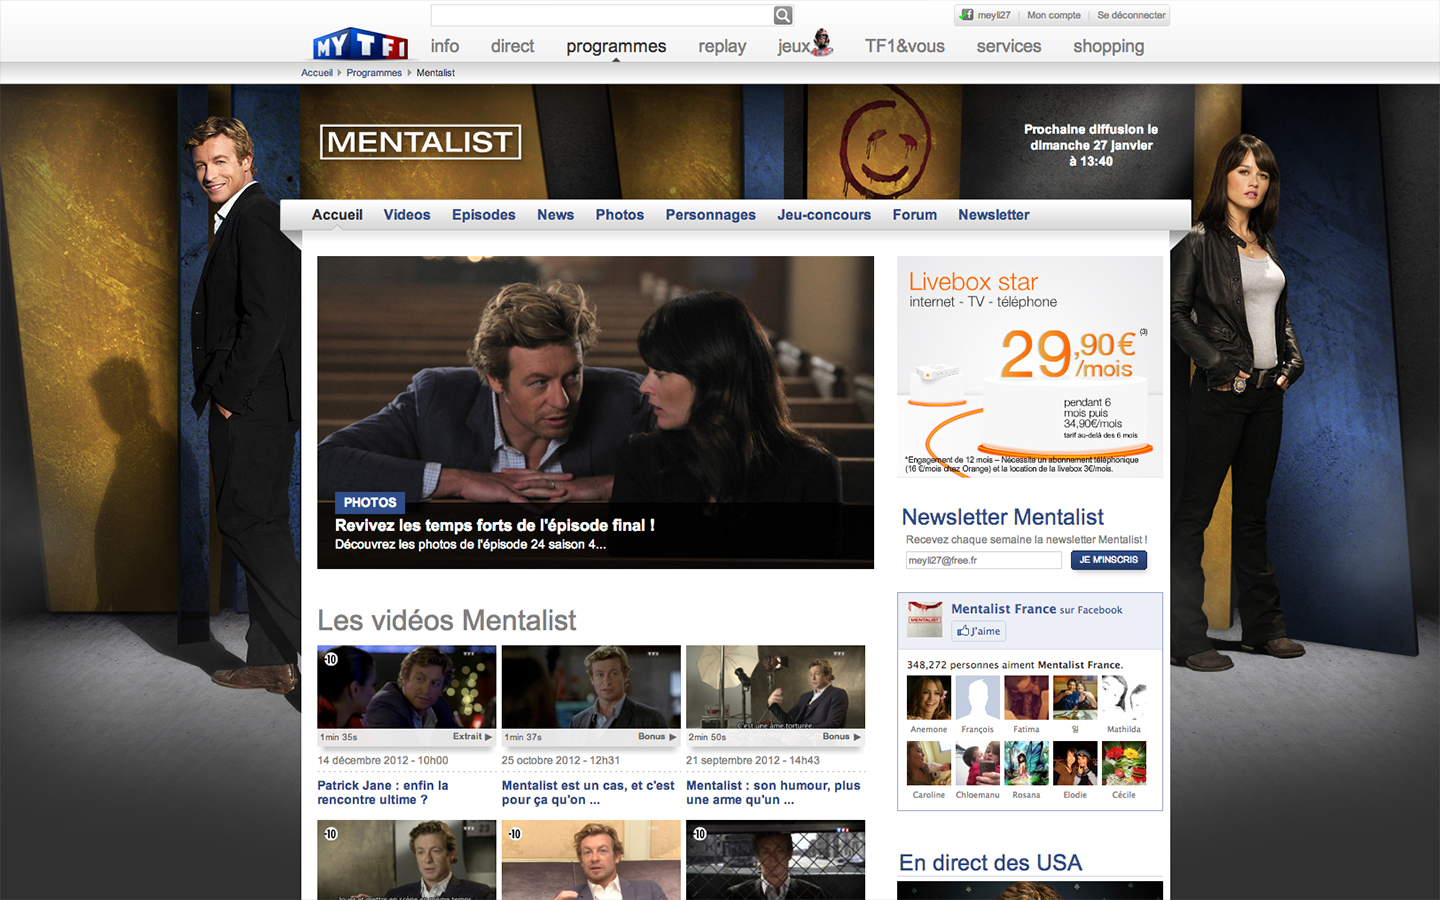 Mentalist - Website 2